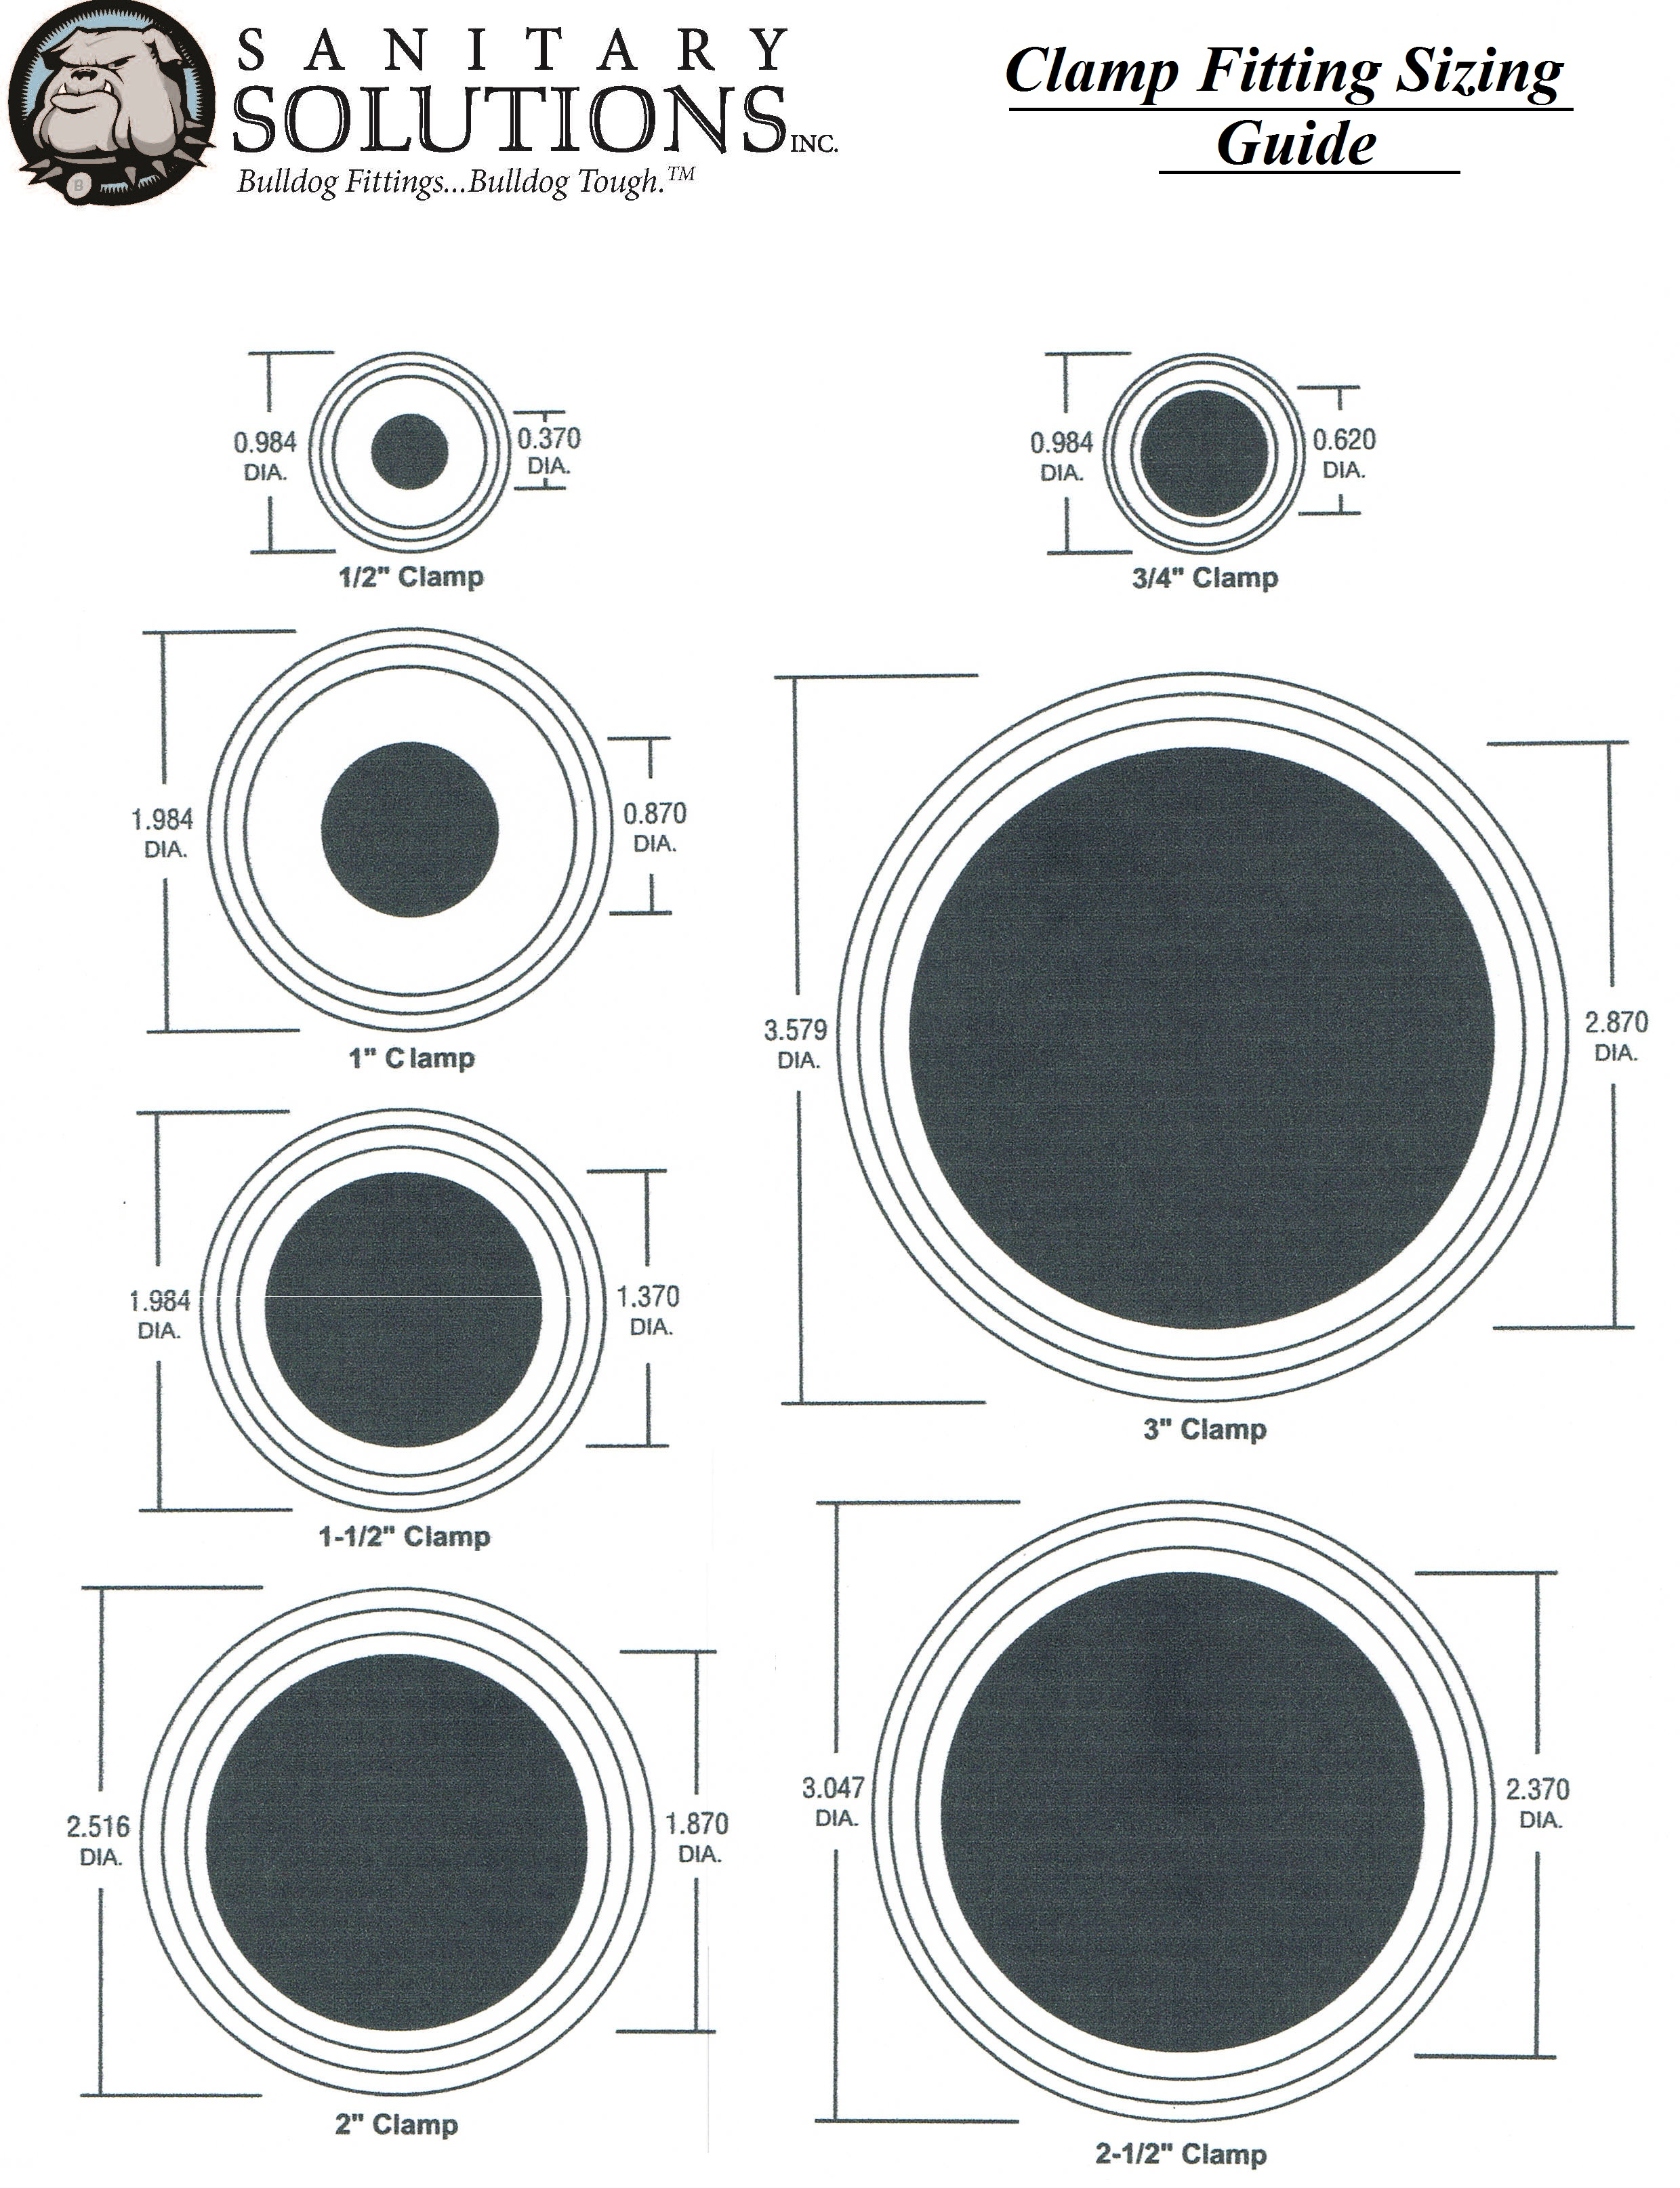 Clamp Fitting Sizing Guide